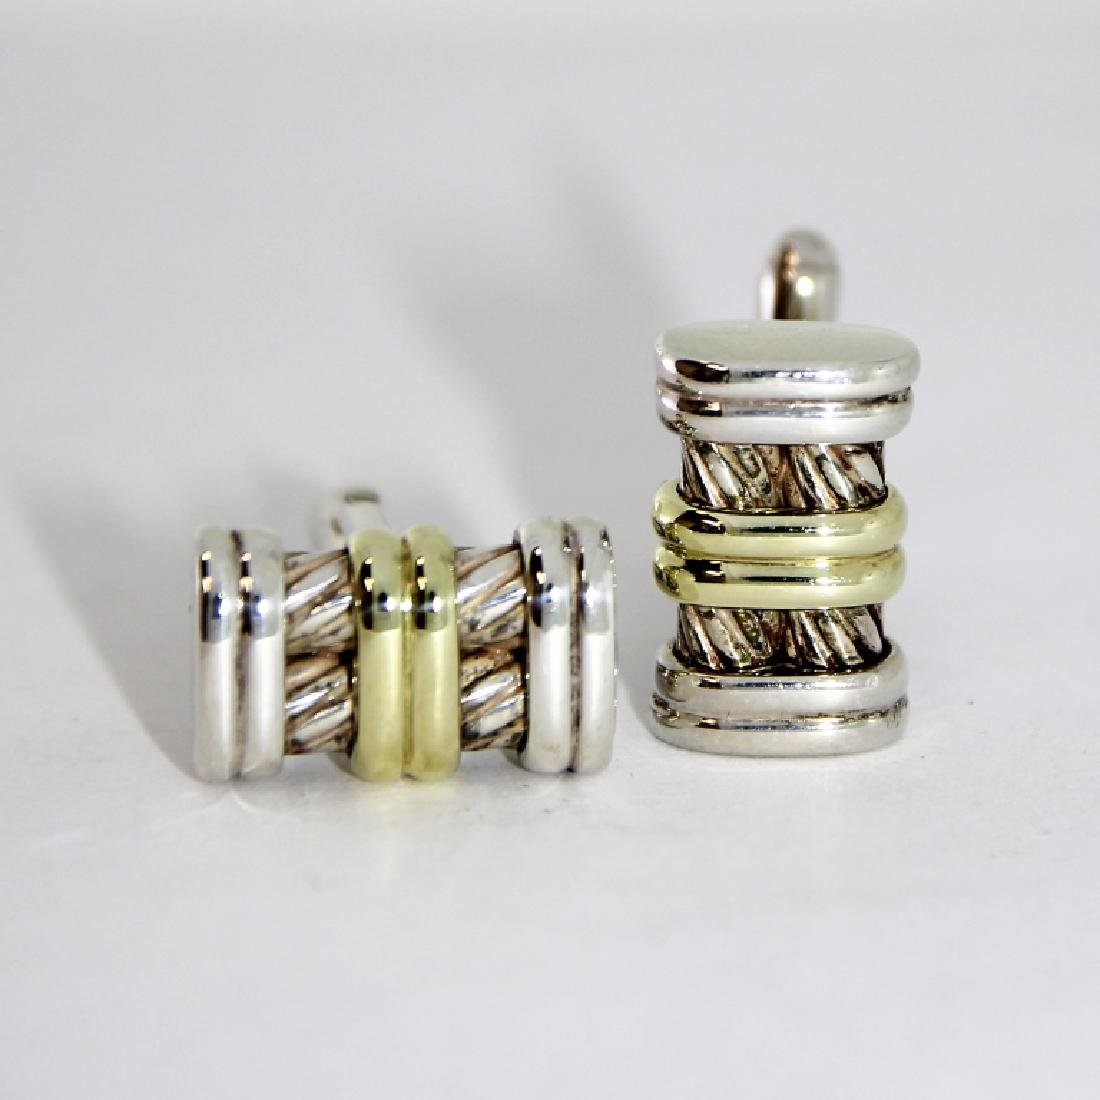 David Yurman 14K Gold S.S. Cable Cufflinks